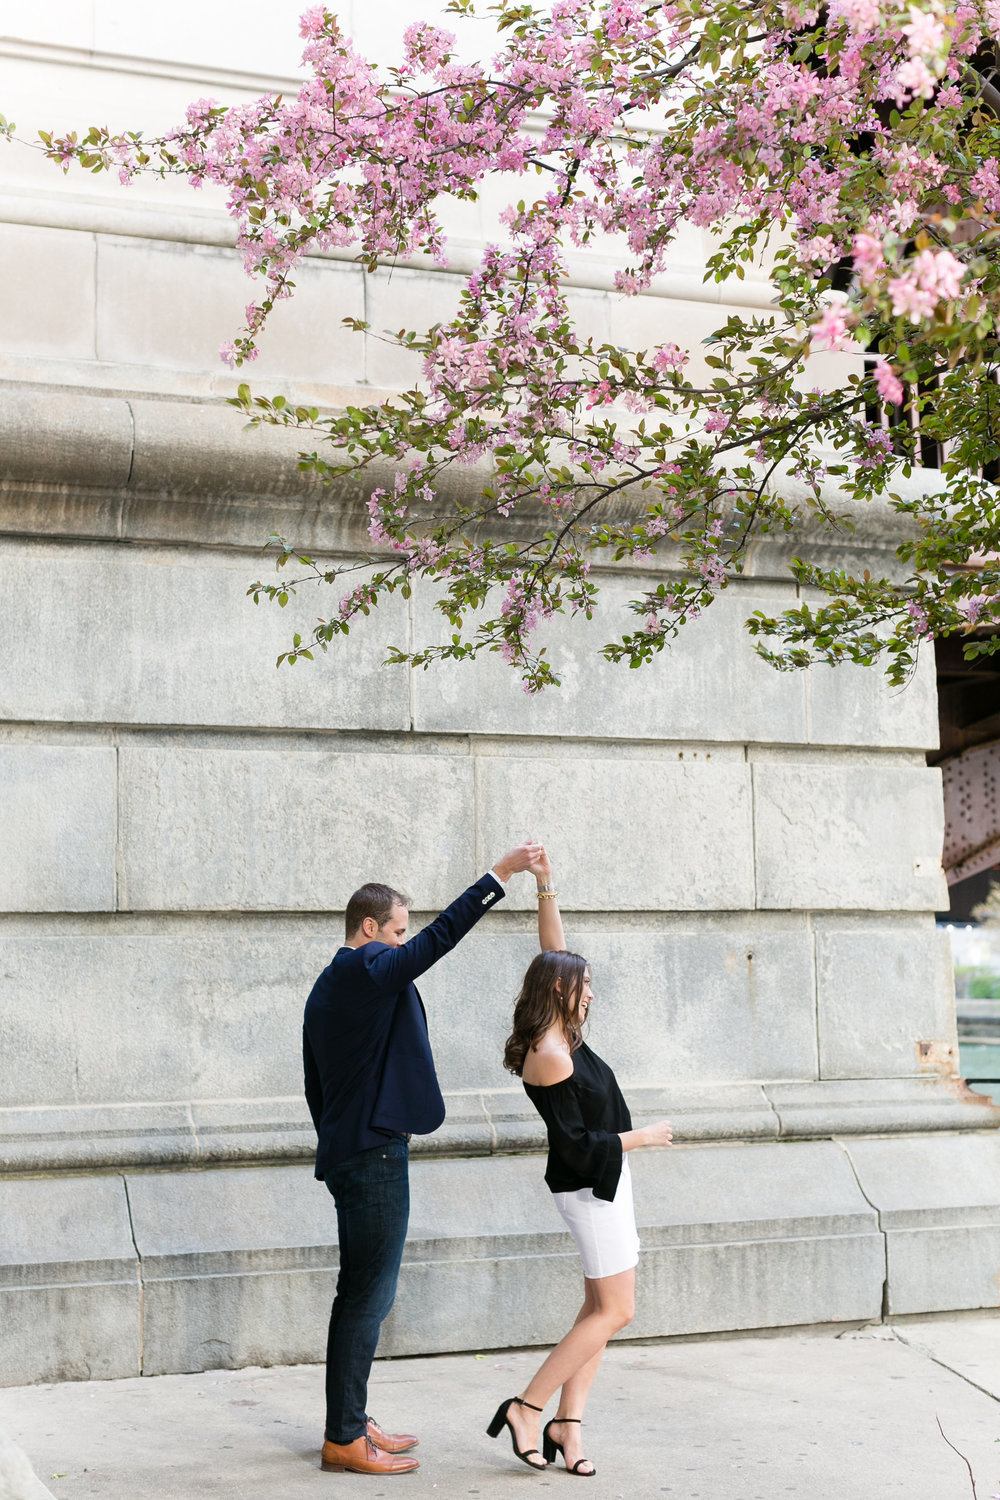 Engagement Photos-Chicago Engagement Session-Chicago Wedding Planner-Chicago Wedding Coordinator-Clover Events-Emilia Jane Photography